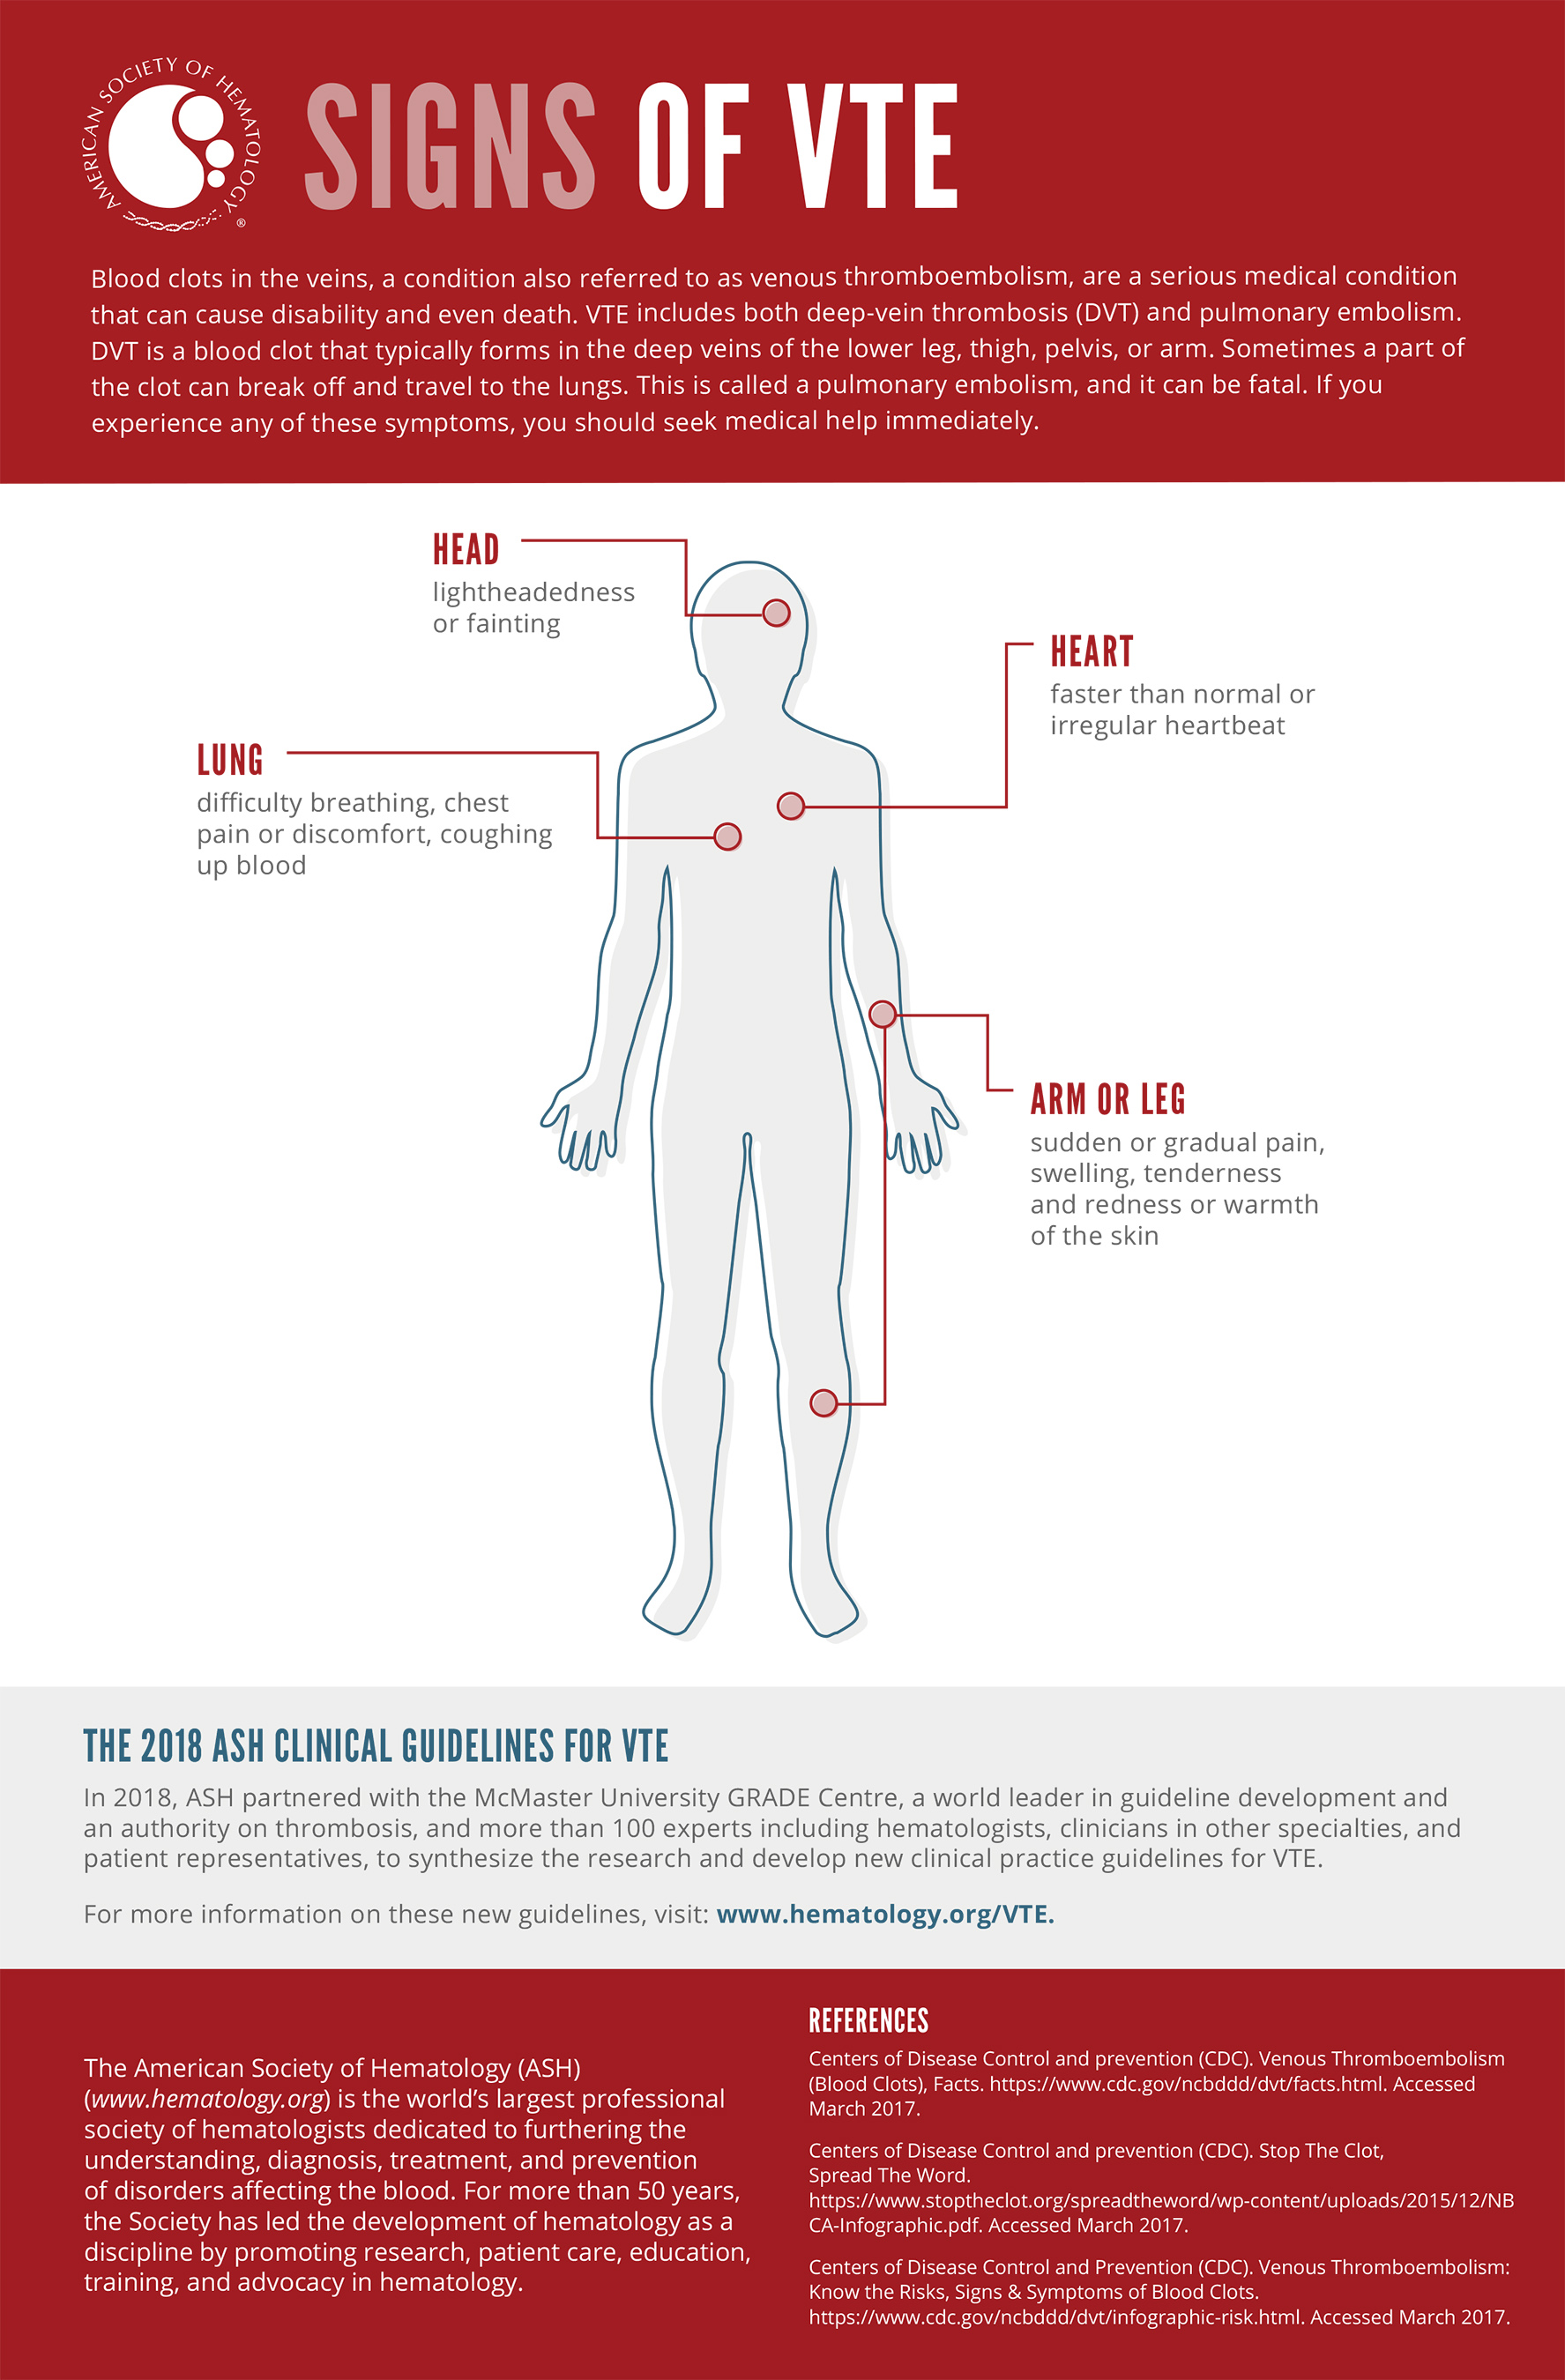 Signs of VTE